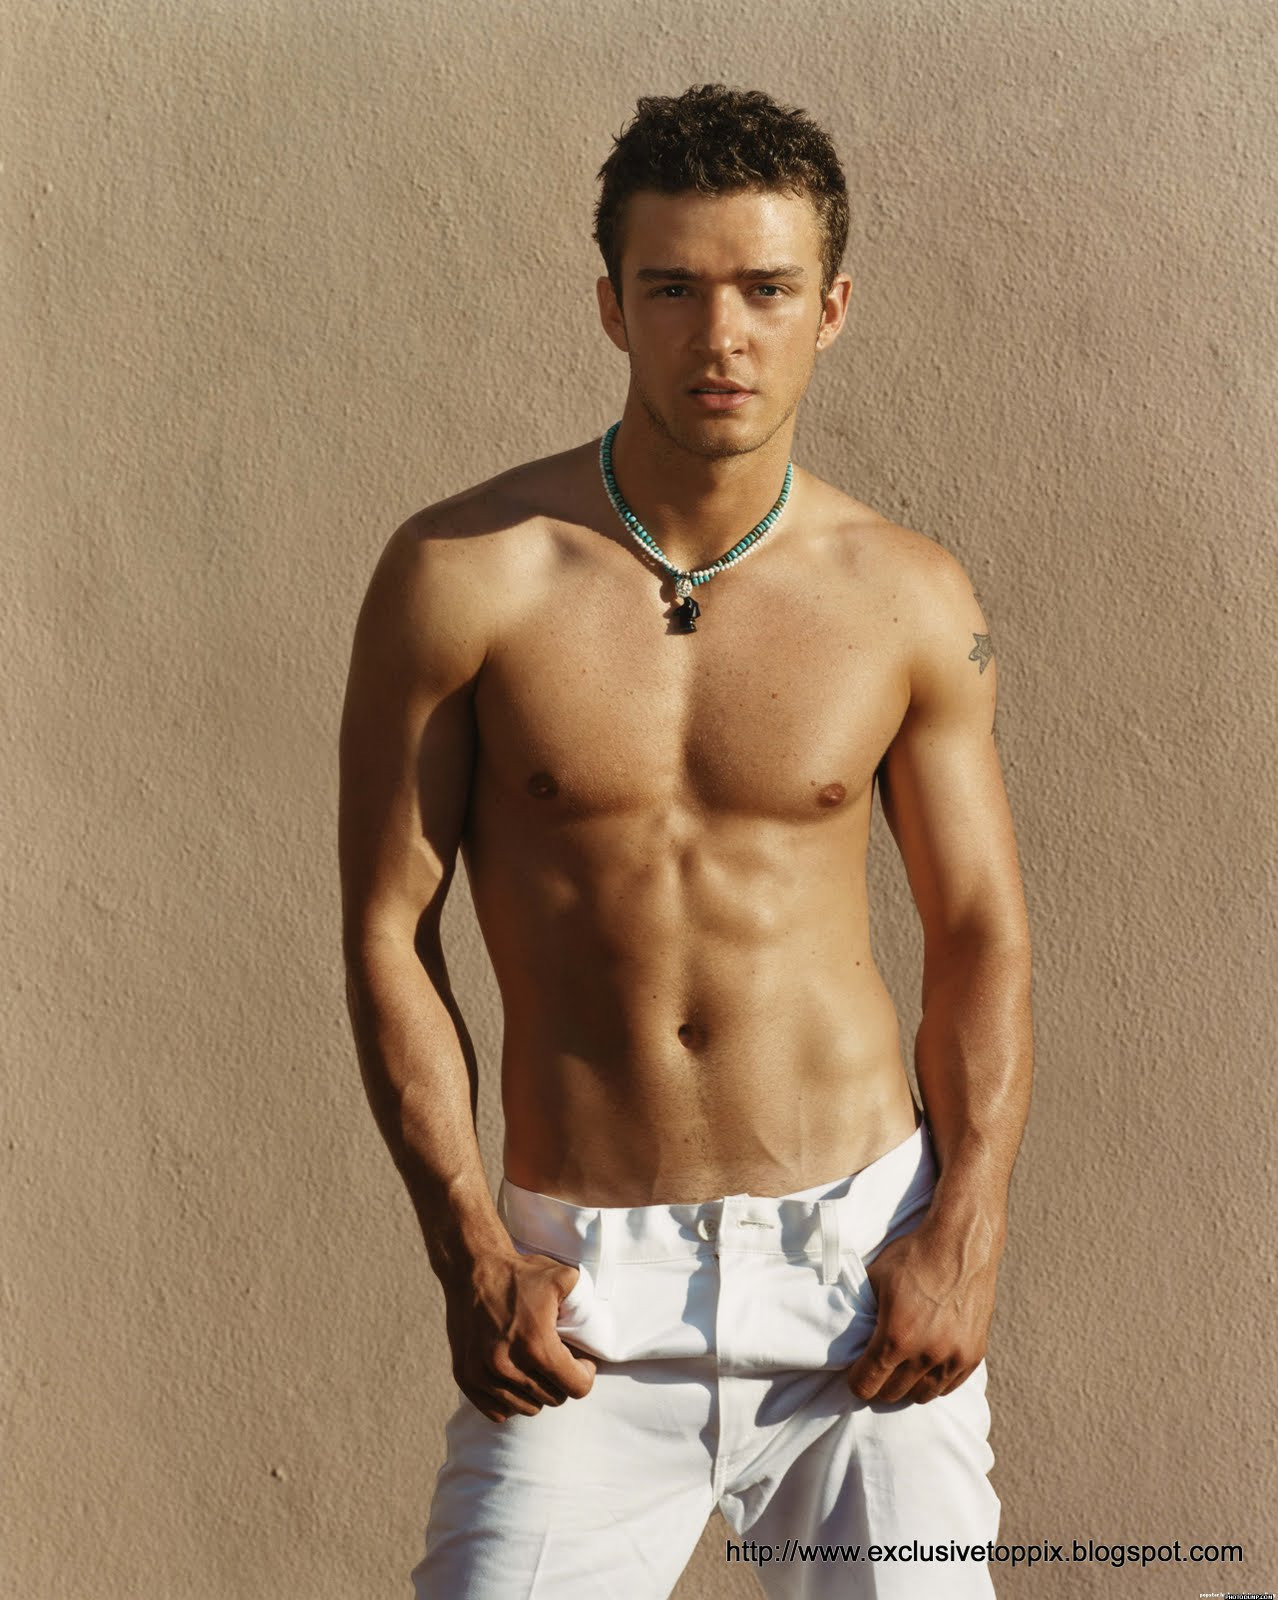 Exclusive Top Pix Justin Timberlake Shirtless Pix